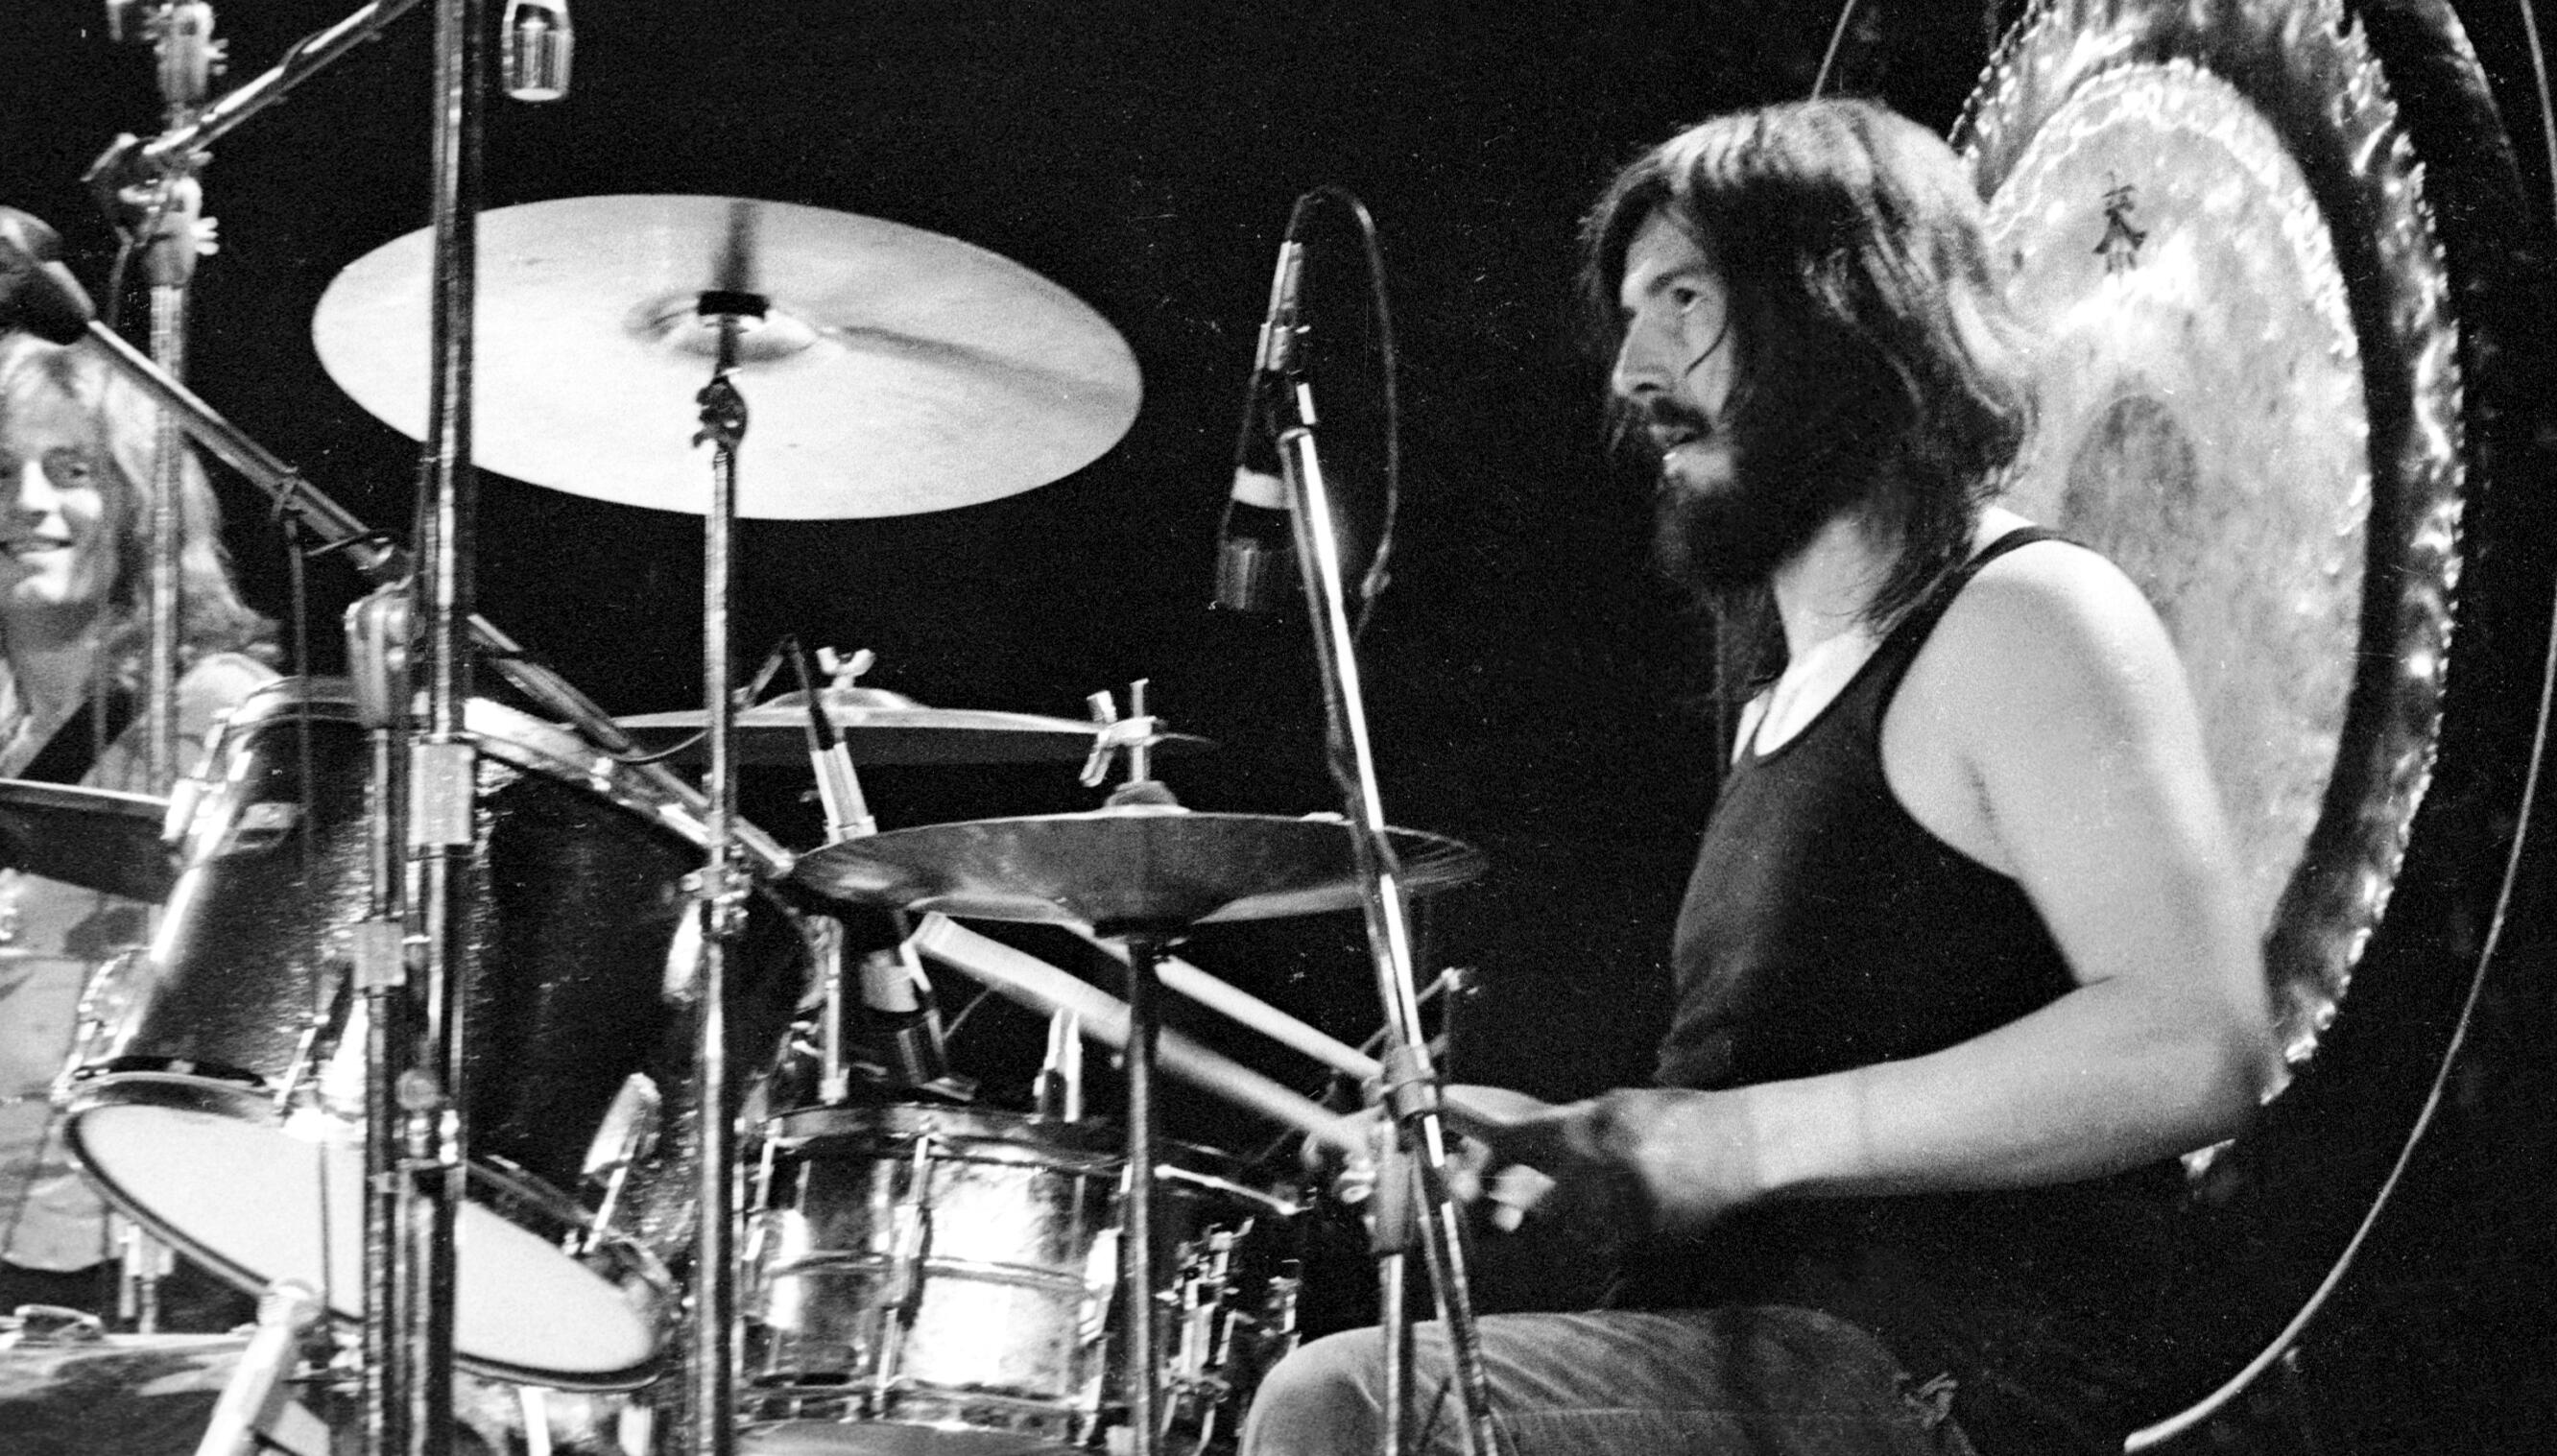 Biography On John Bonham Coming This Year With Foreword By Dave Grohl